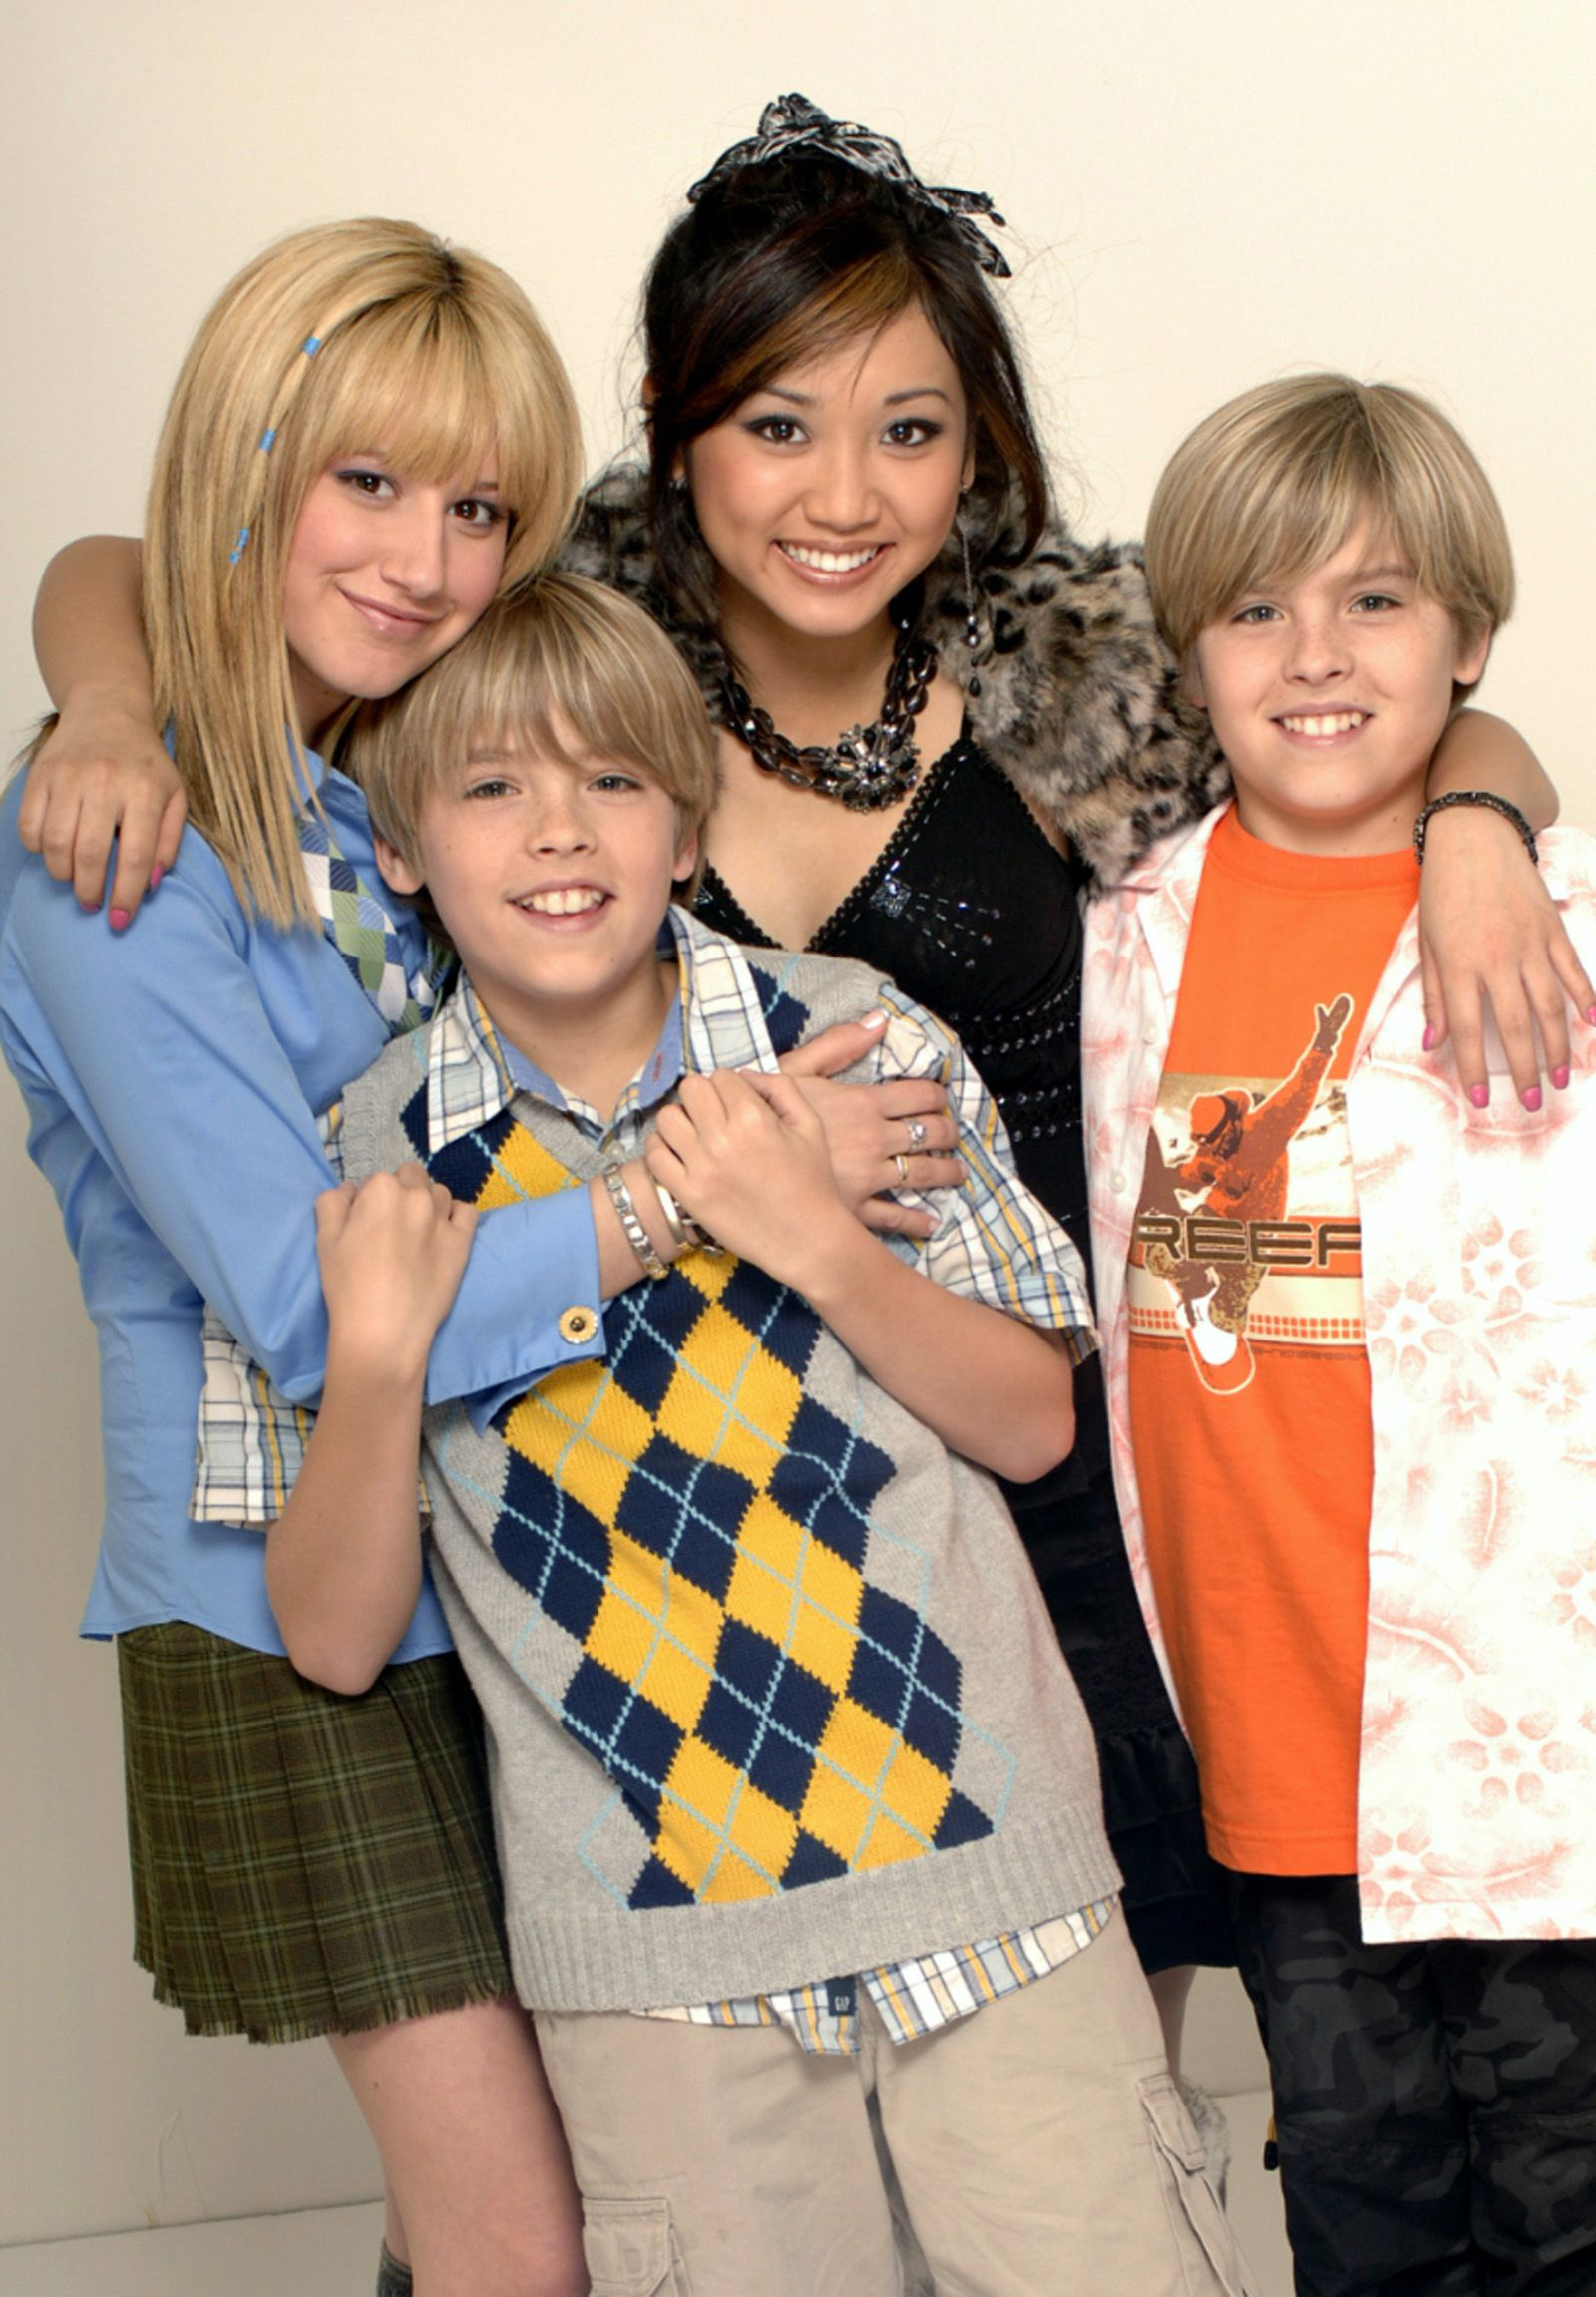 Pin by Andrea Kowalski on Hhhhhmmmm Dylan sprouse, Dylan